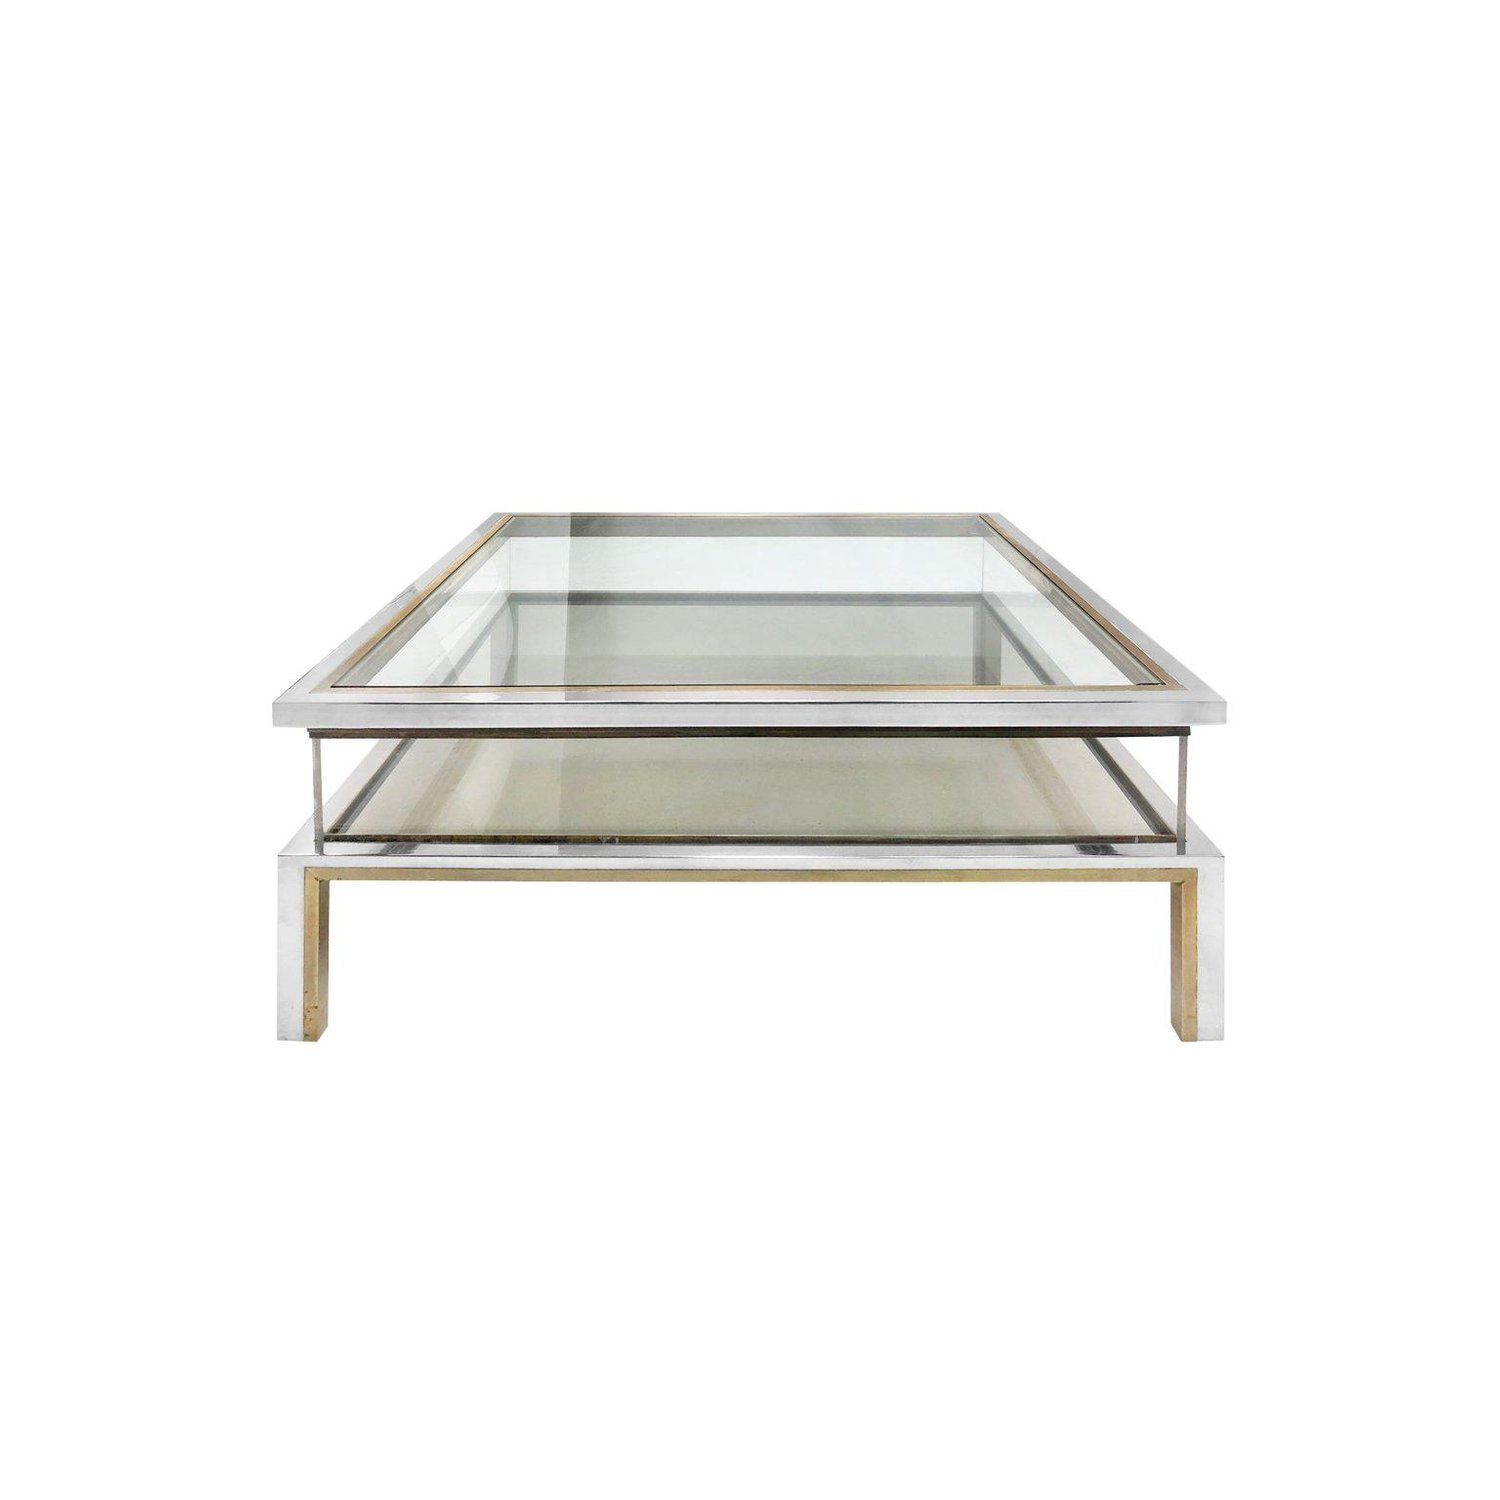 1970s French Glass And Lucite Sliding Top Vitrine Coffee Table By Maison Jansen Coffee Table Lucite Coffee Tables Coffee Table Square [ 1500 x 1500 Pixel ]